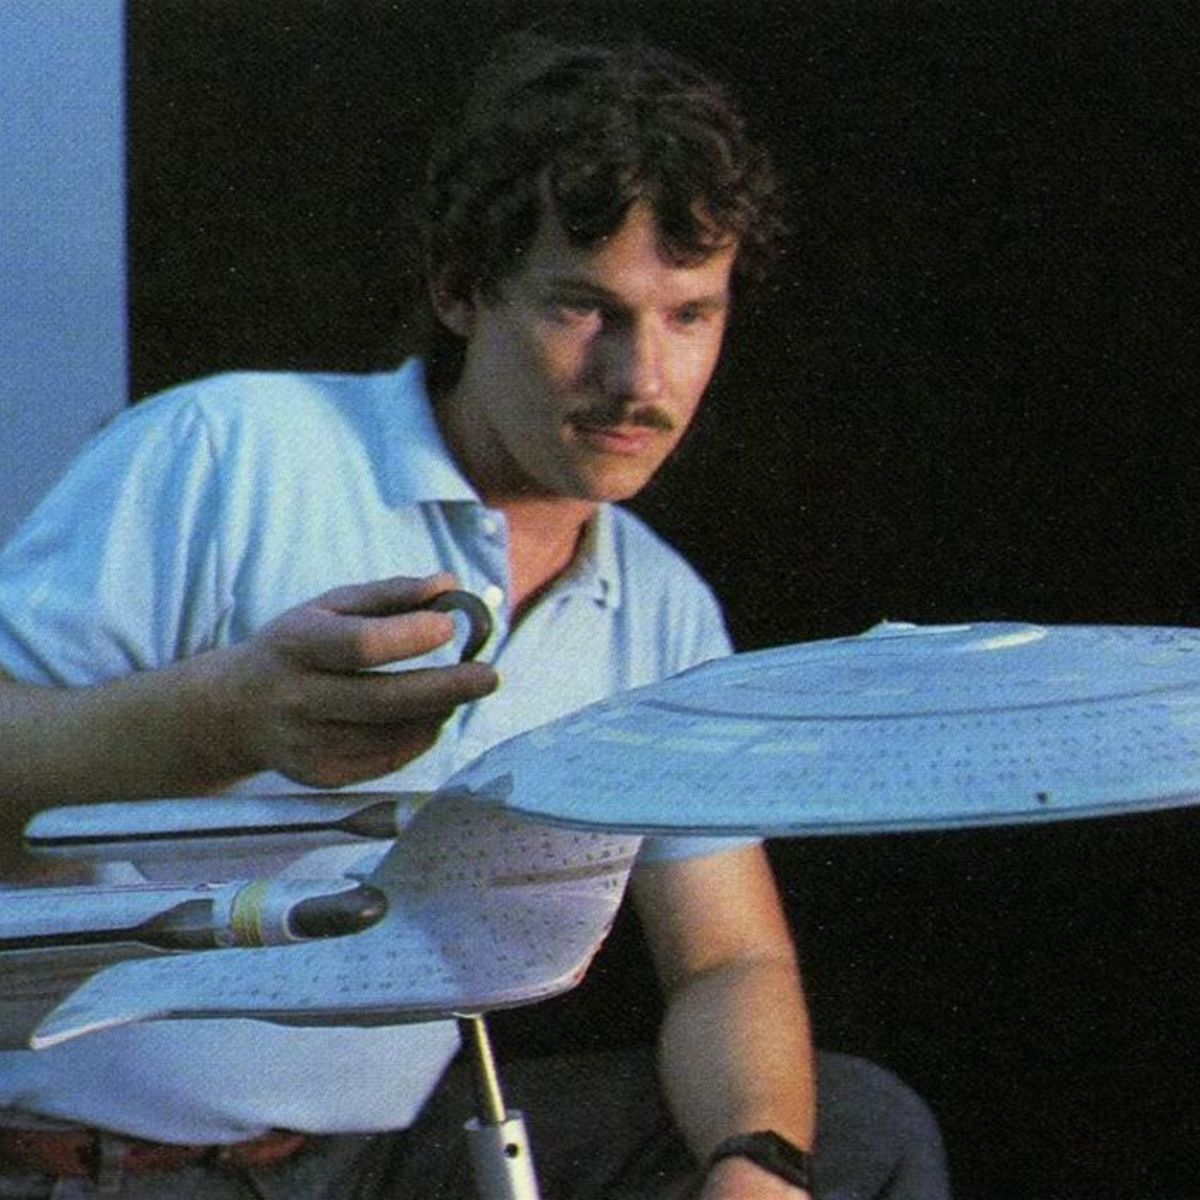 USS_Enterprise-D_two-foot_model_set_up_for_shooting_at_Image_G_by_Gary_Hutzel.jpg